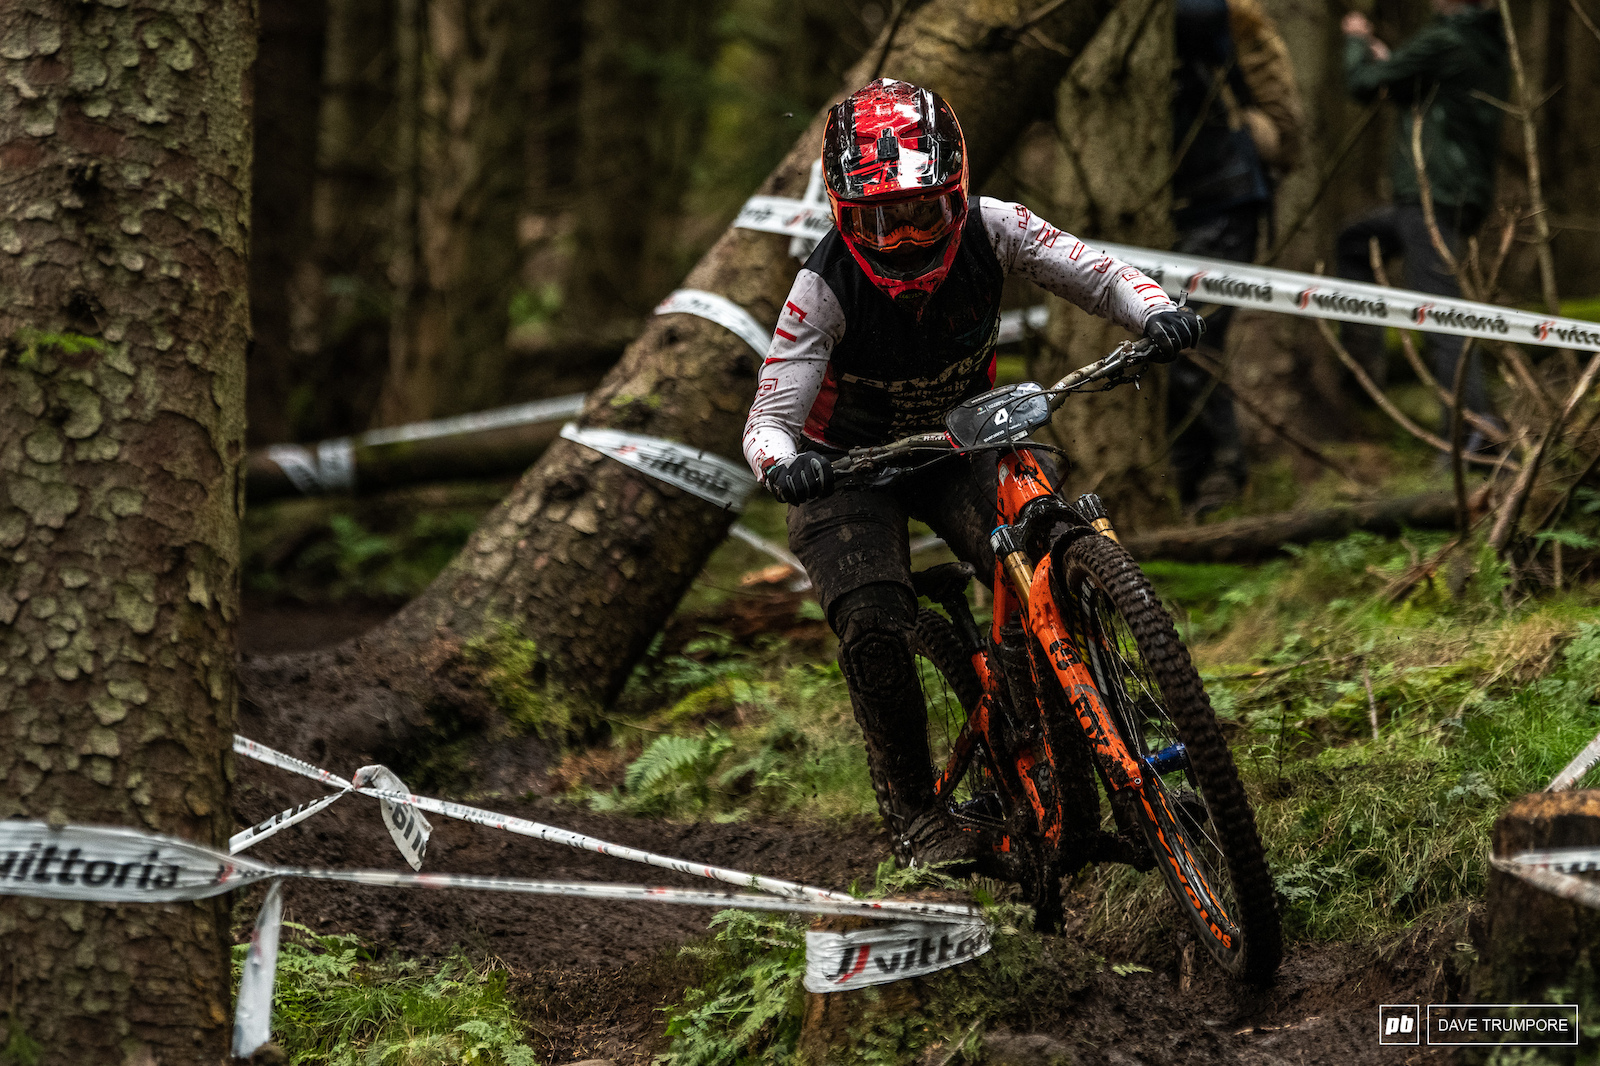 Morgane Charre didn t have enough for the win today but finishes the season on a high not with a 2nd in the overall